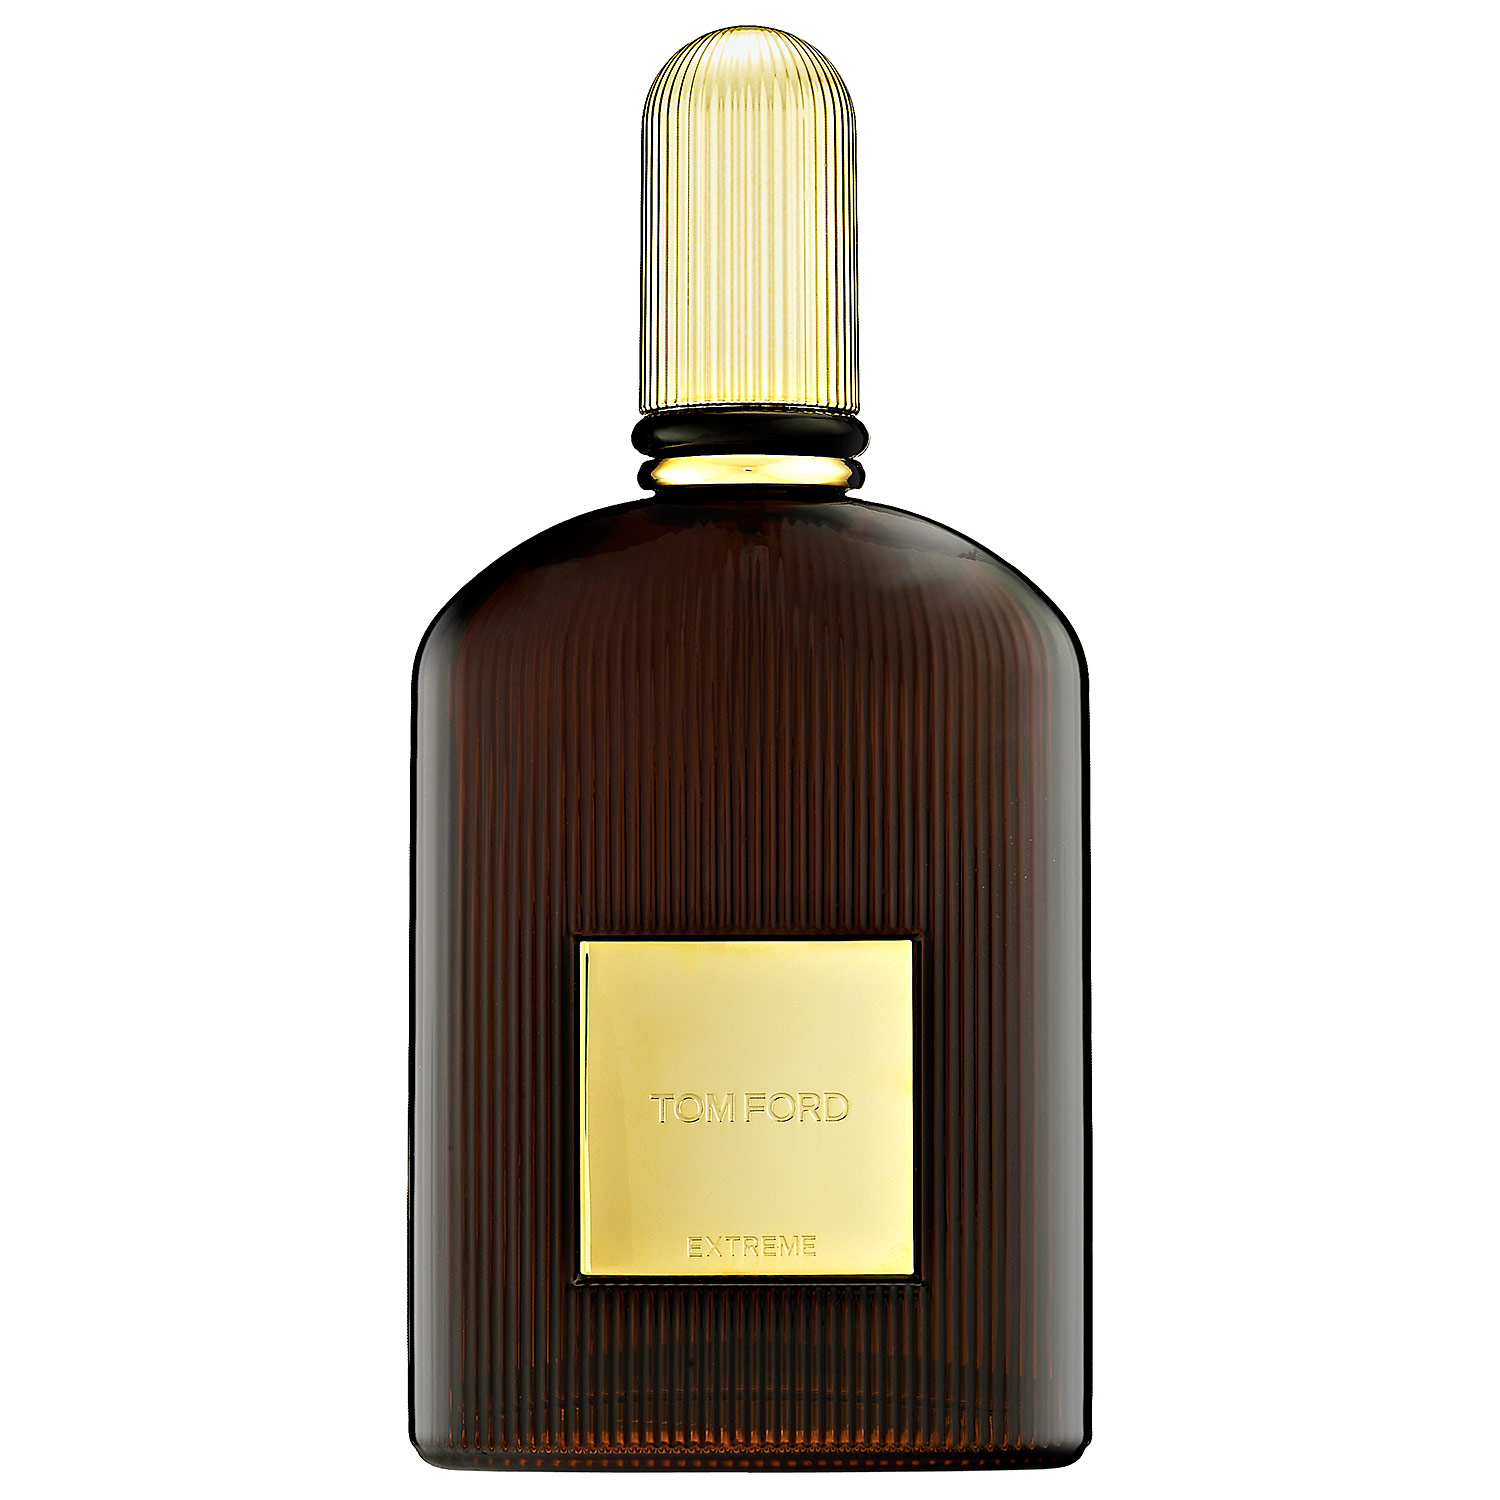 tom ford extreme edt fragrance review eaumg. Black Bedroom Furniture Sets. Home Design Ideas